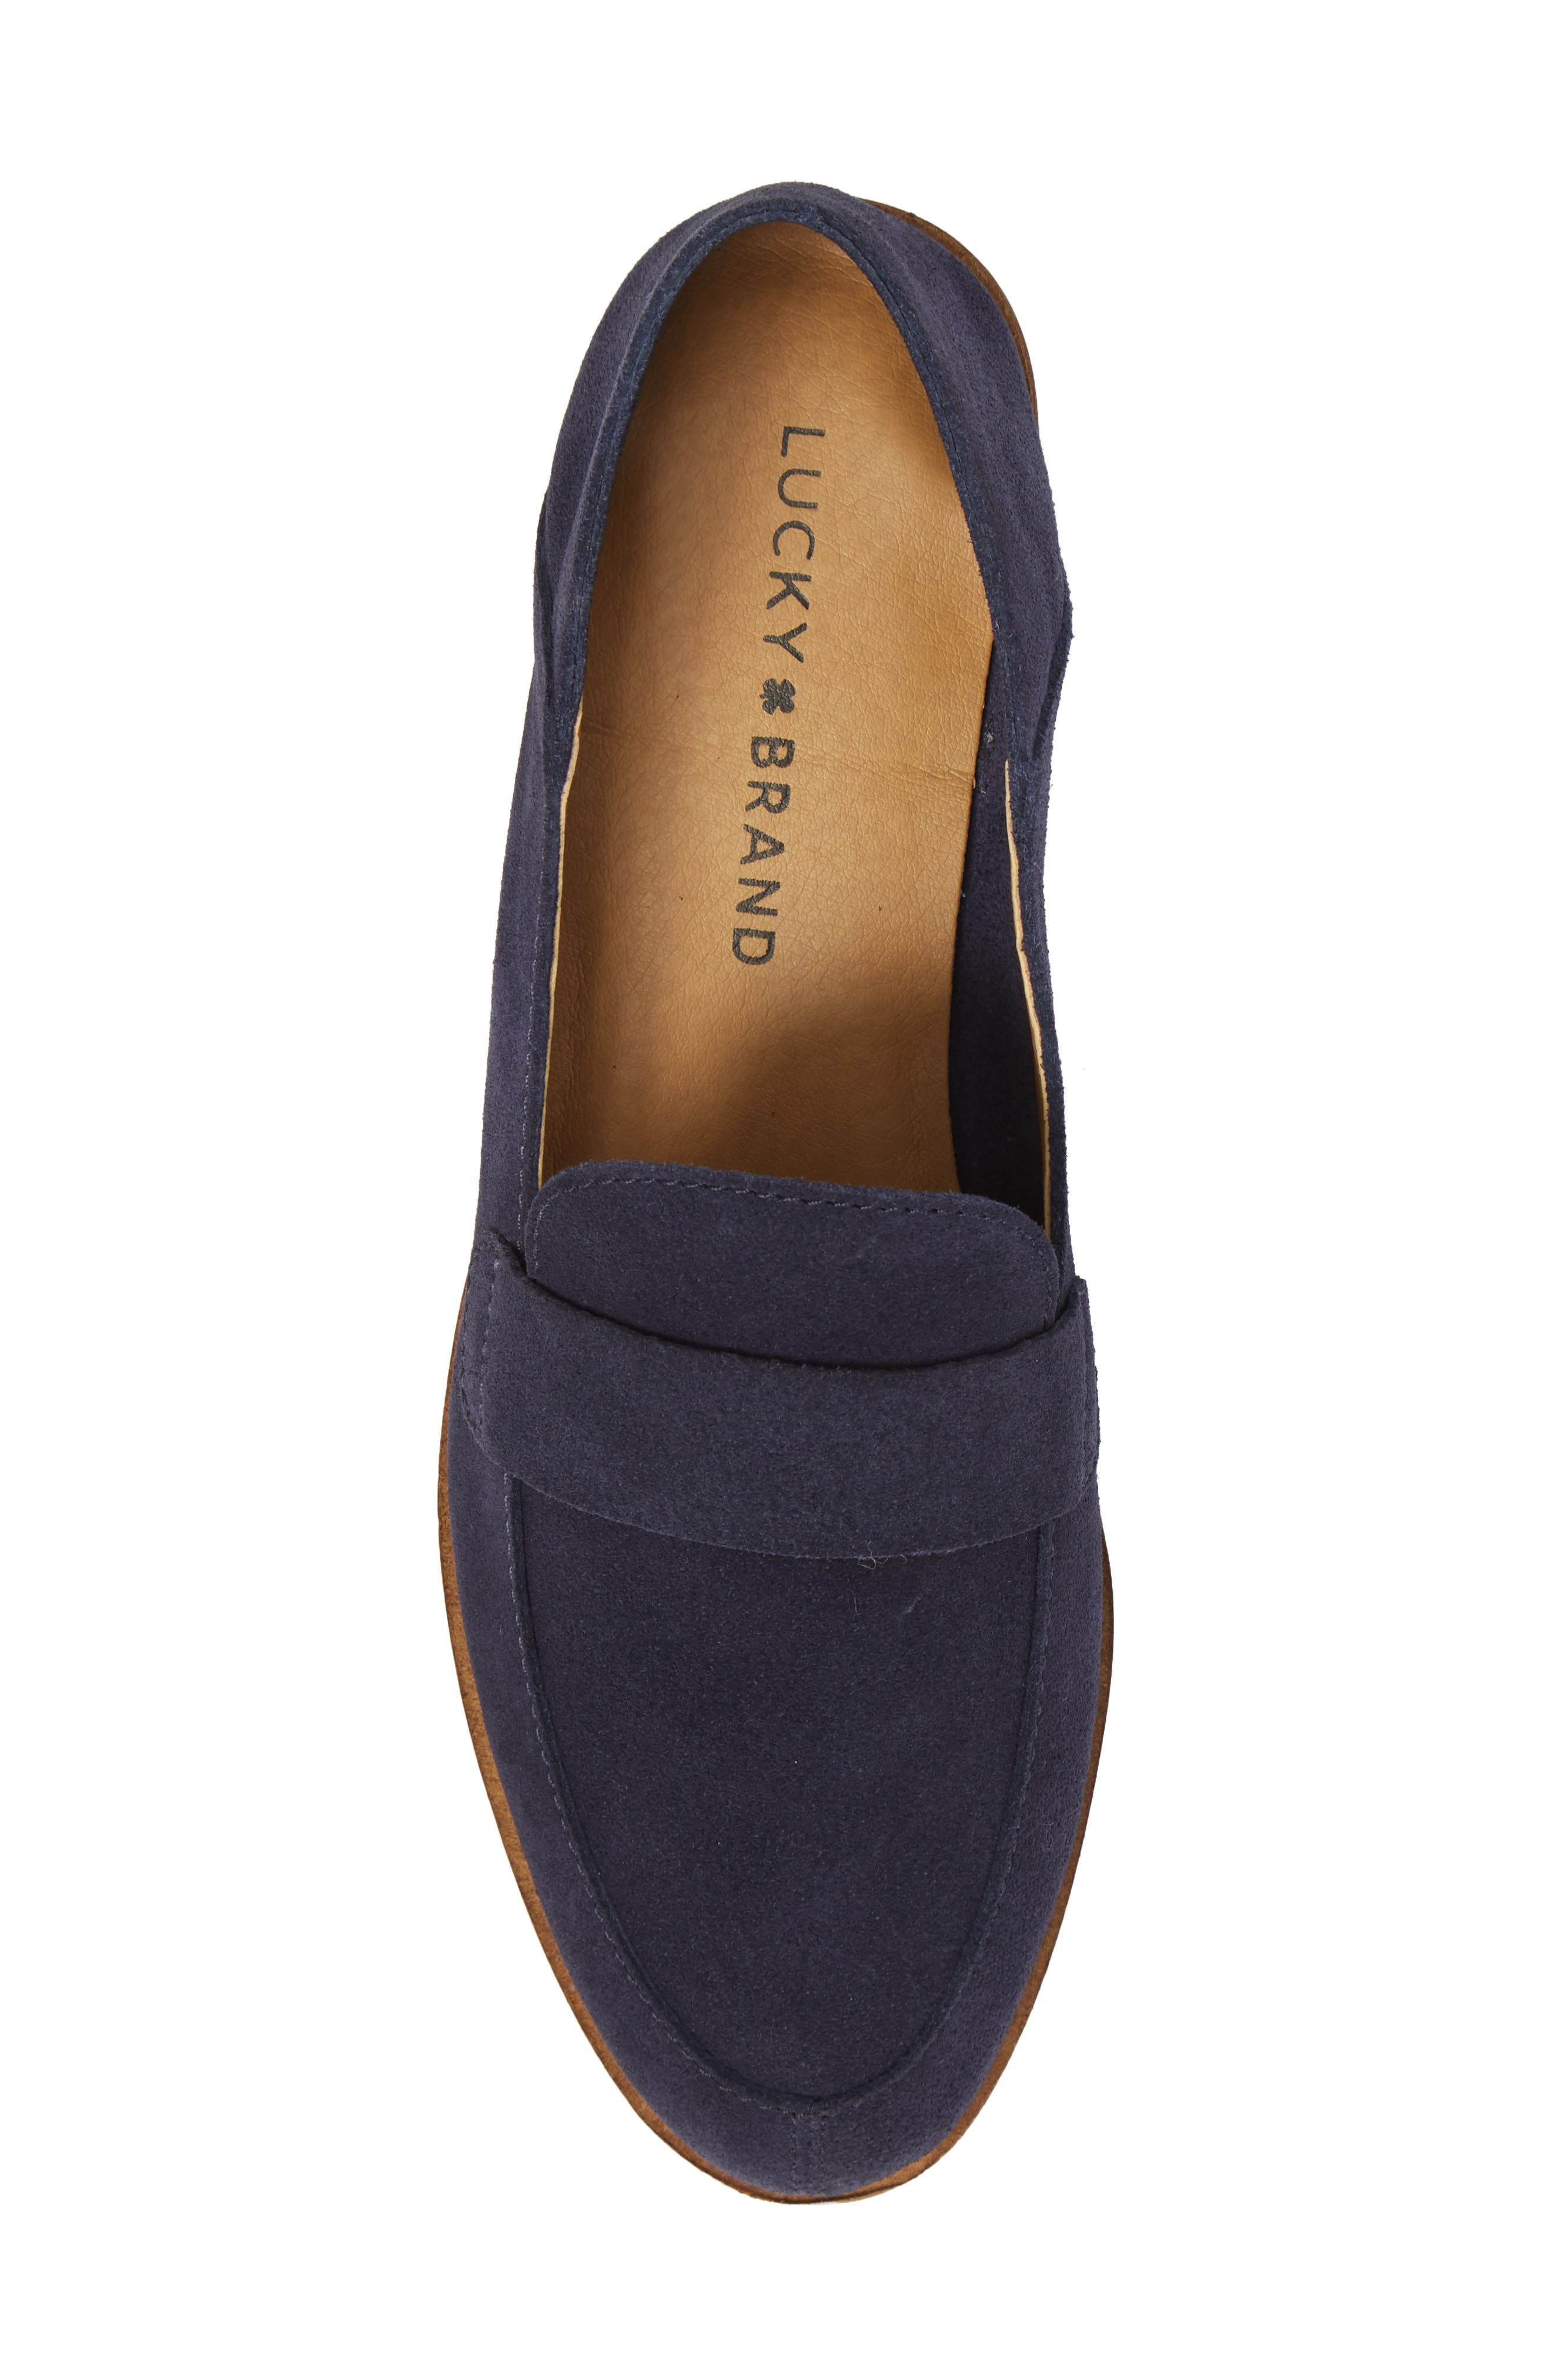 Chennie Loafer,                             Alternate thumbnail 19, color,